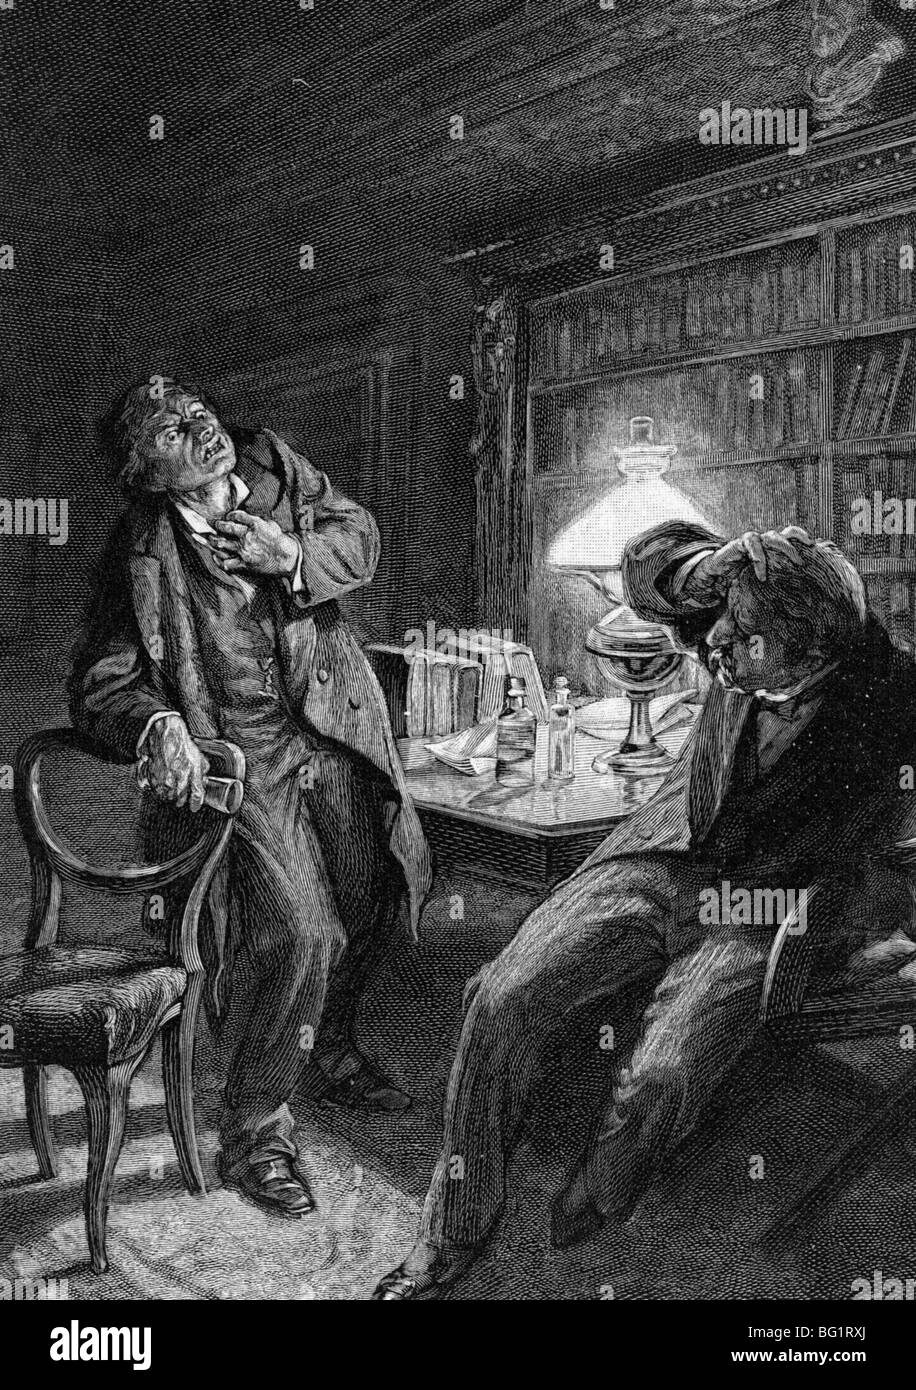 dr jekyll and mr hyde coursework The strange case of dr jekyll and mr hyde has inspired as many the beast within of course, possible to think of dr jekyll and mr hyde as a study.